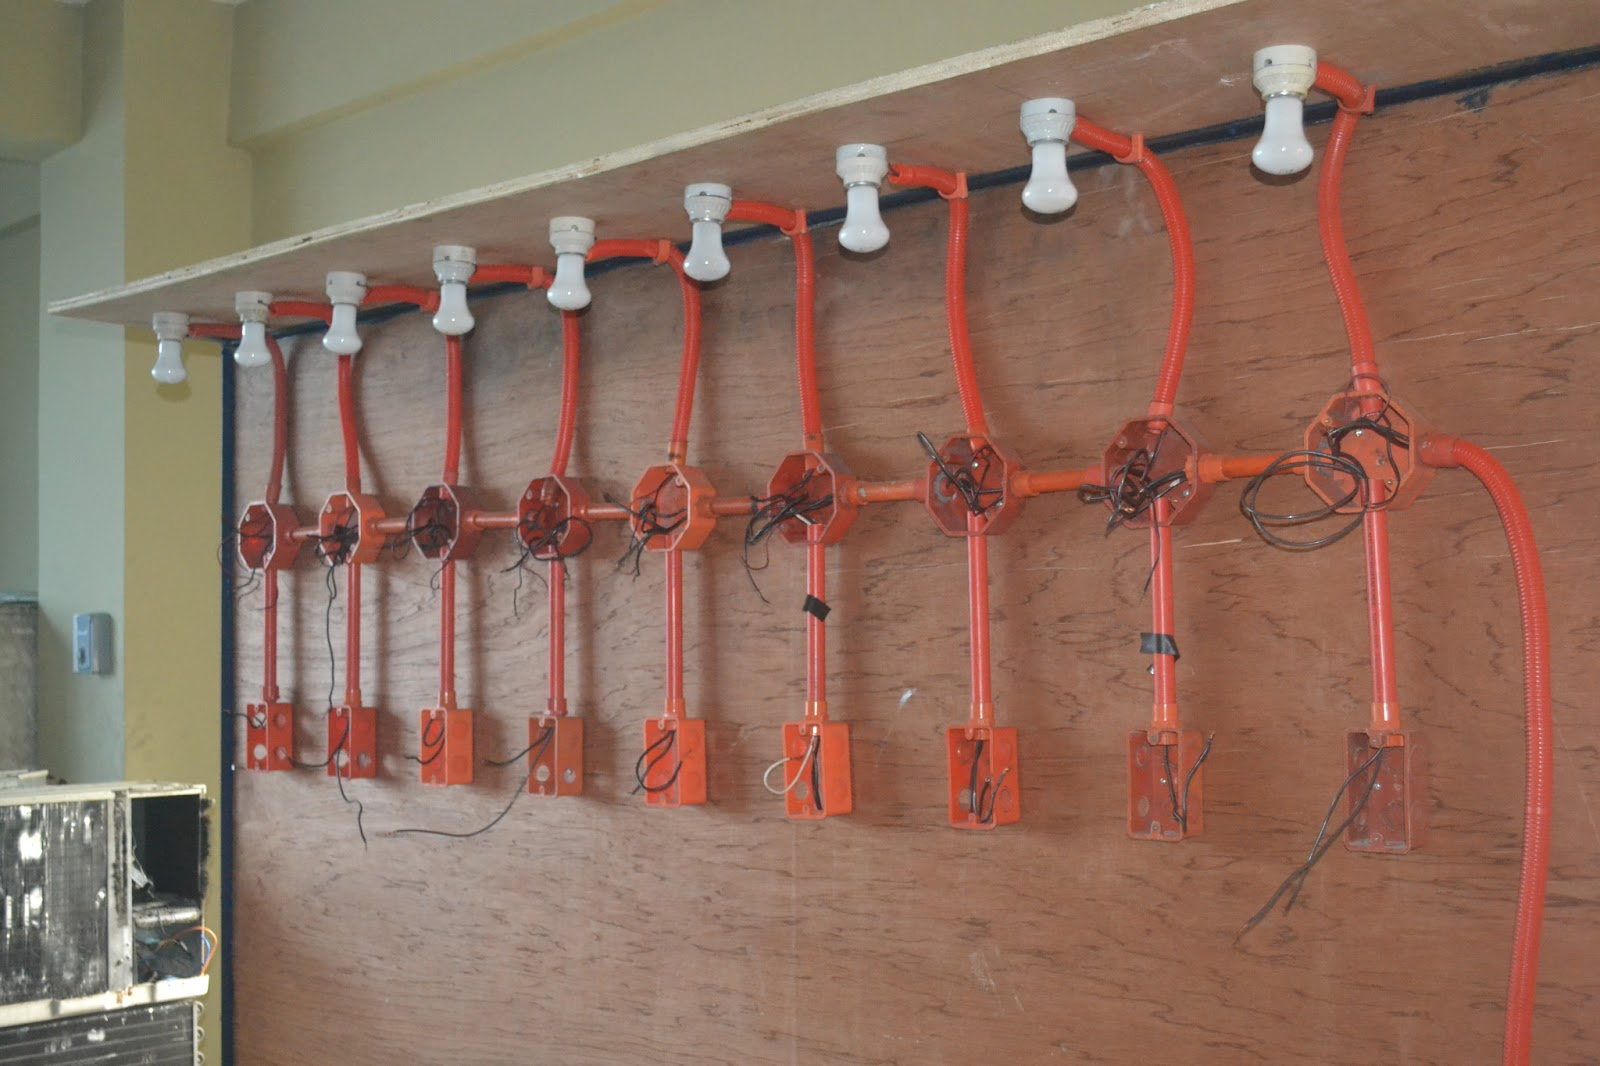 tesda courses from electron technical vocational training center rh tesdatechnicalcourses blogspot com A Light Switch Wiring A Light Switch Wiring